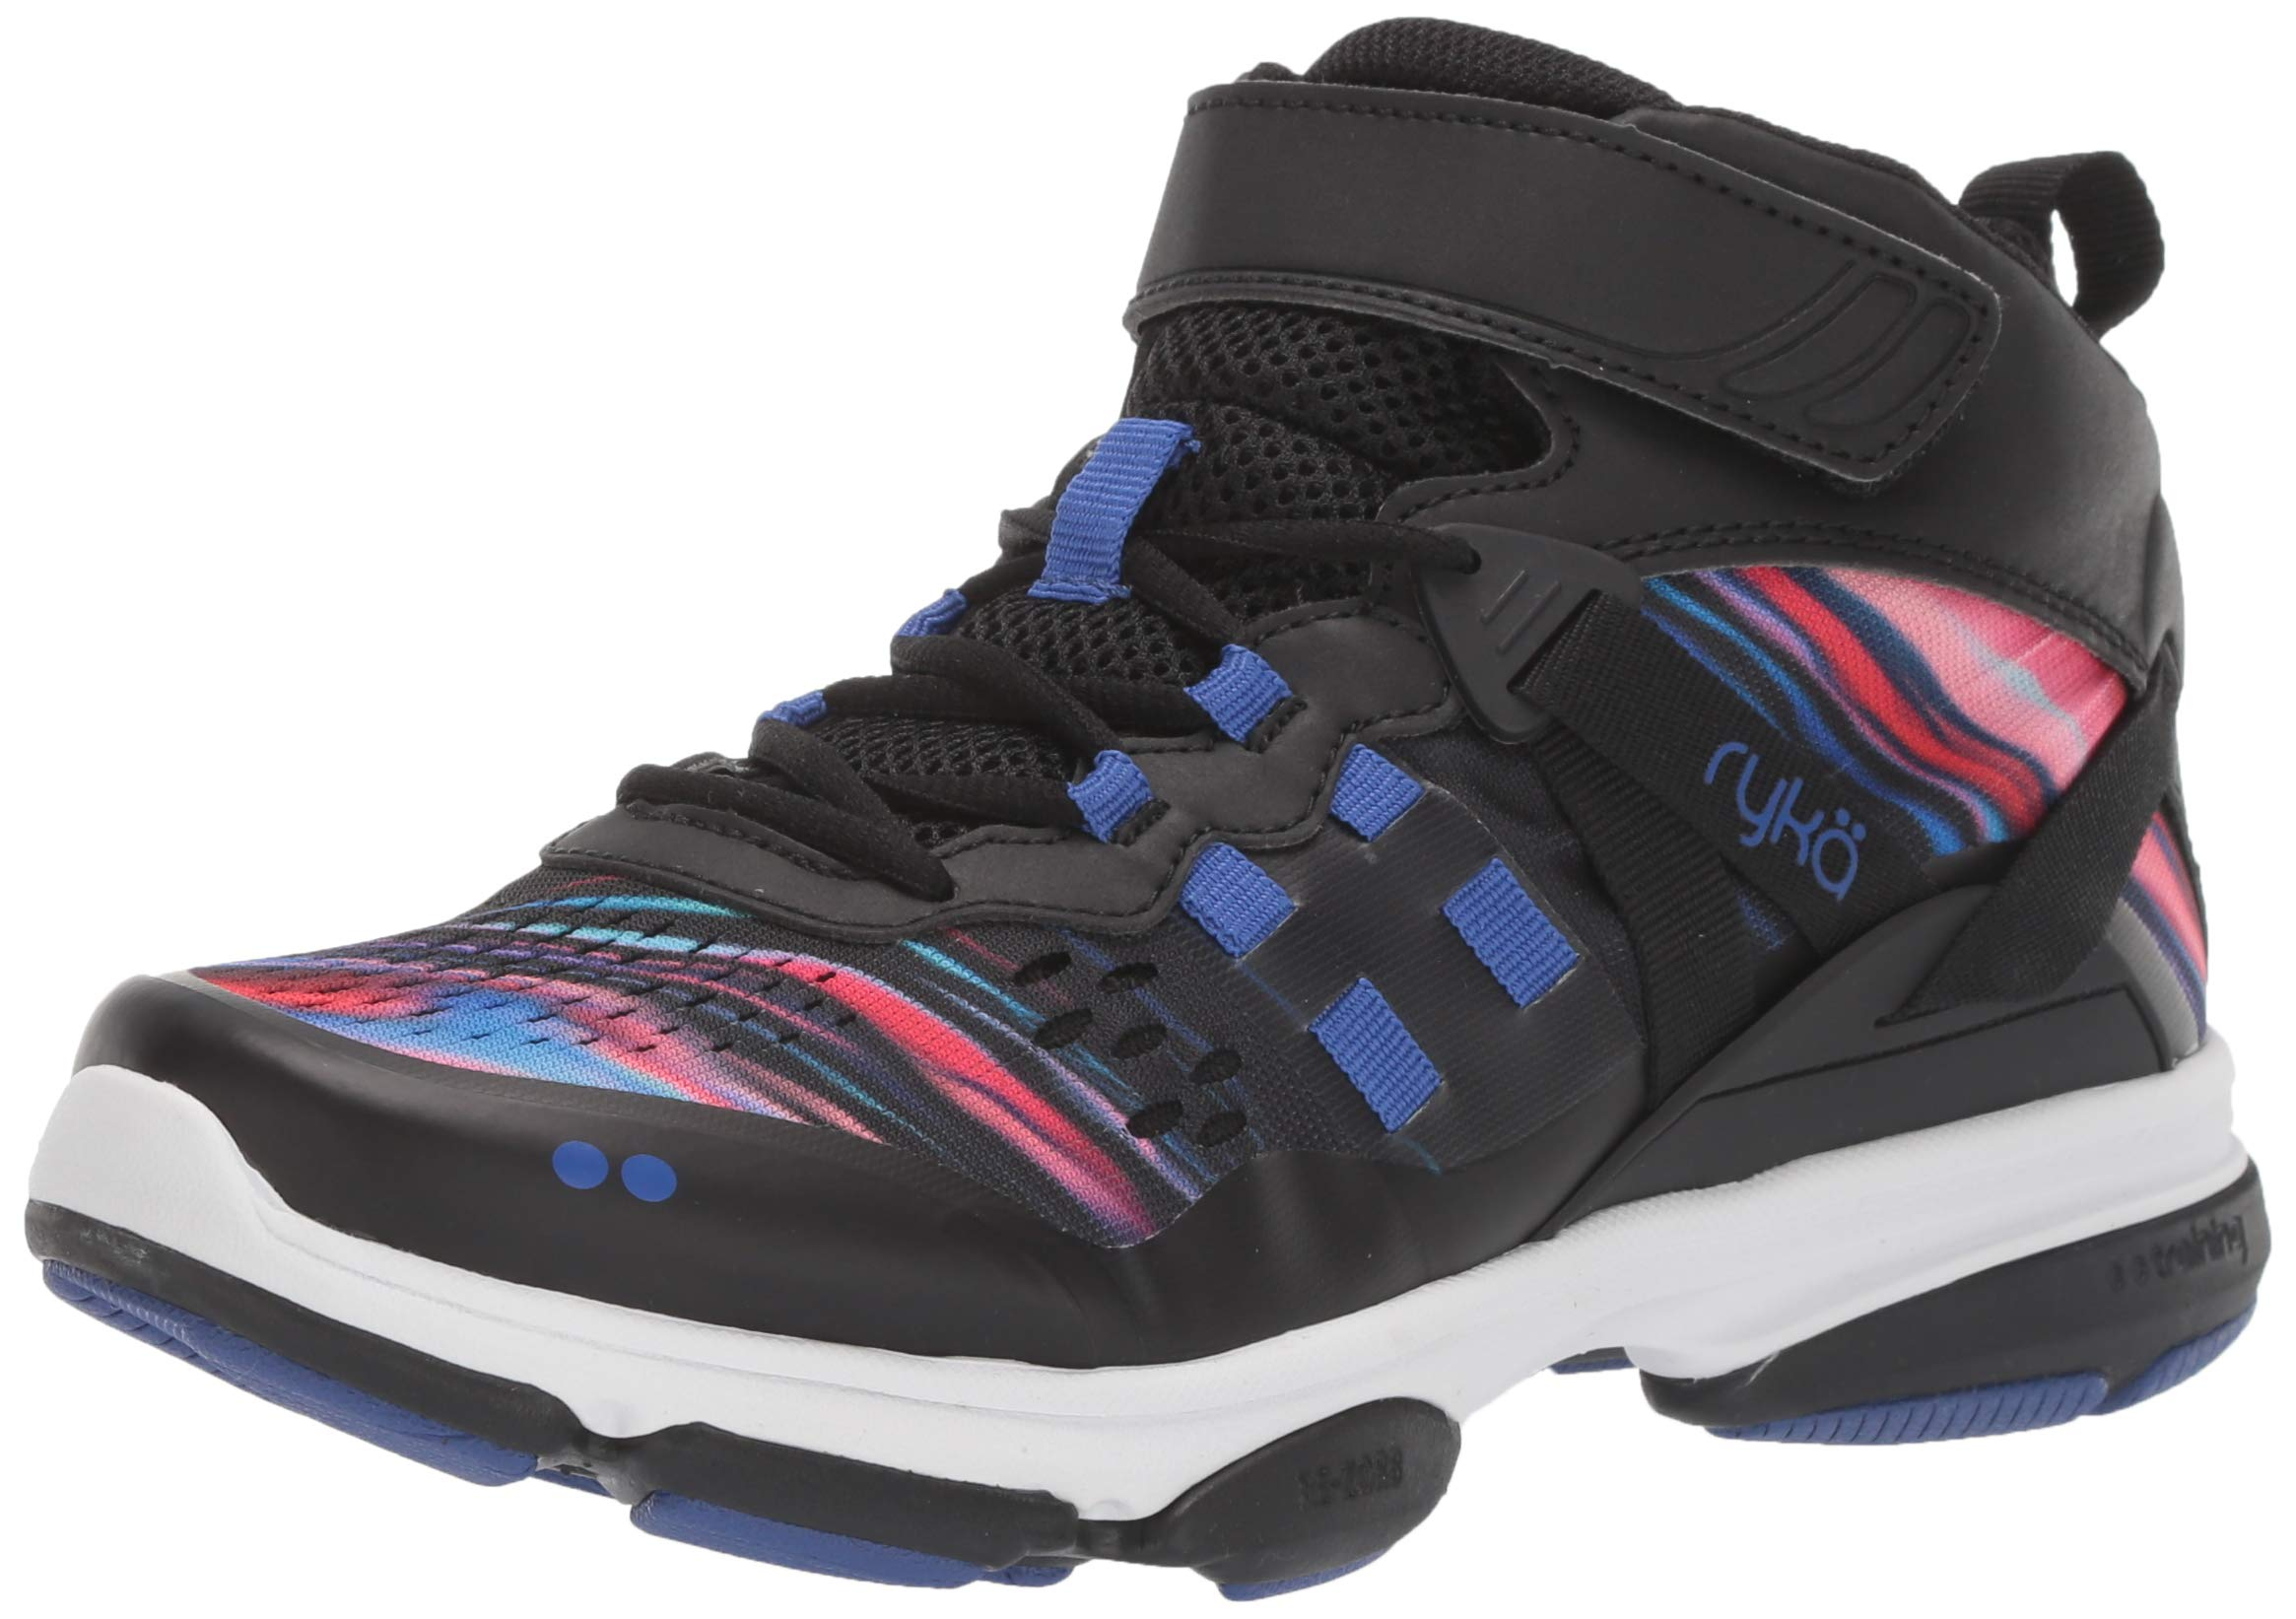 Ryka Women's Devotion XT Mid Cross Trainer, Black/Blue/Pink, 7 W US by Ryka